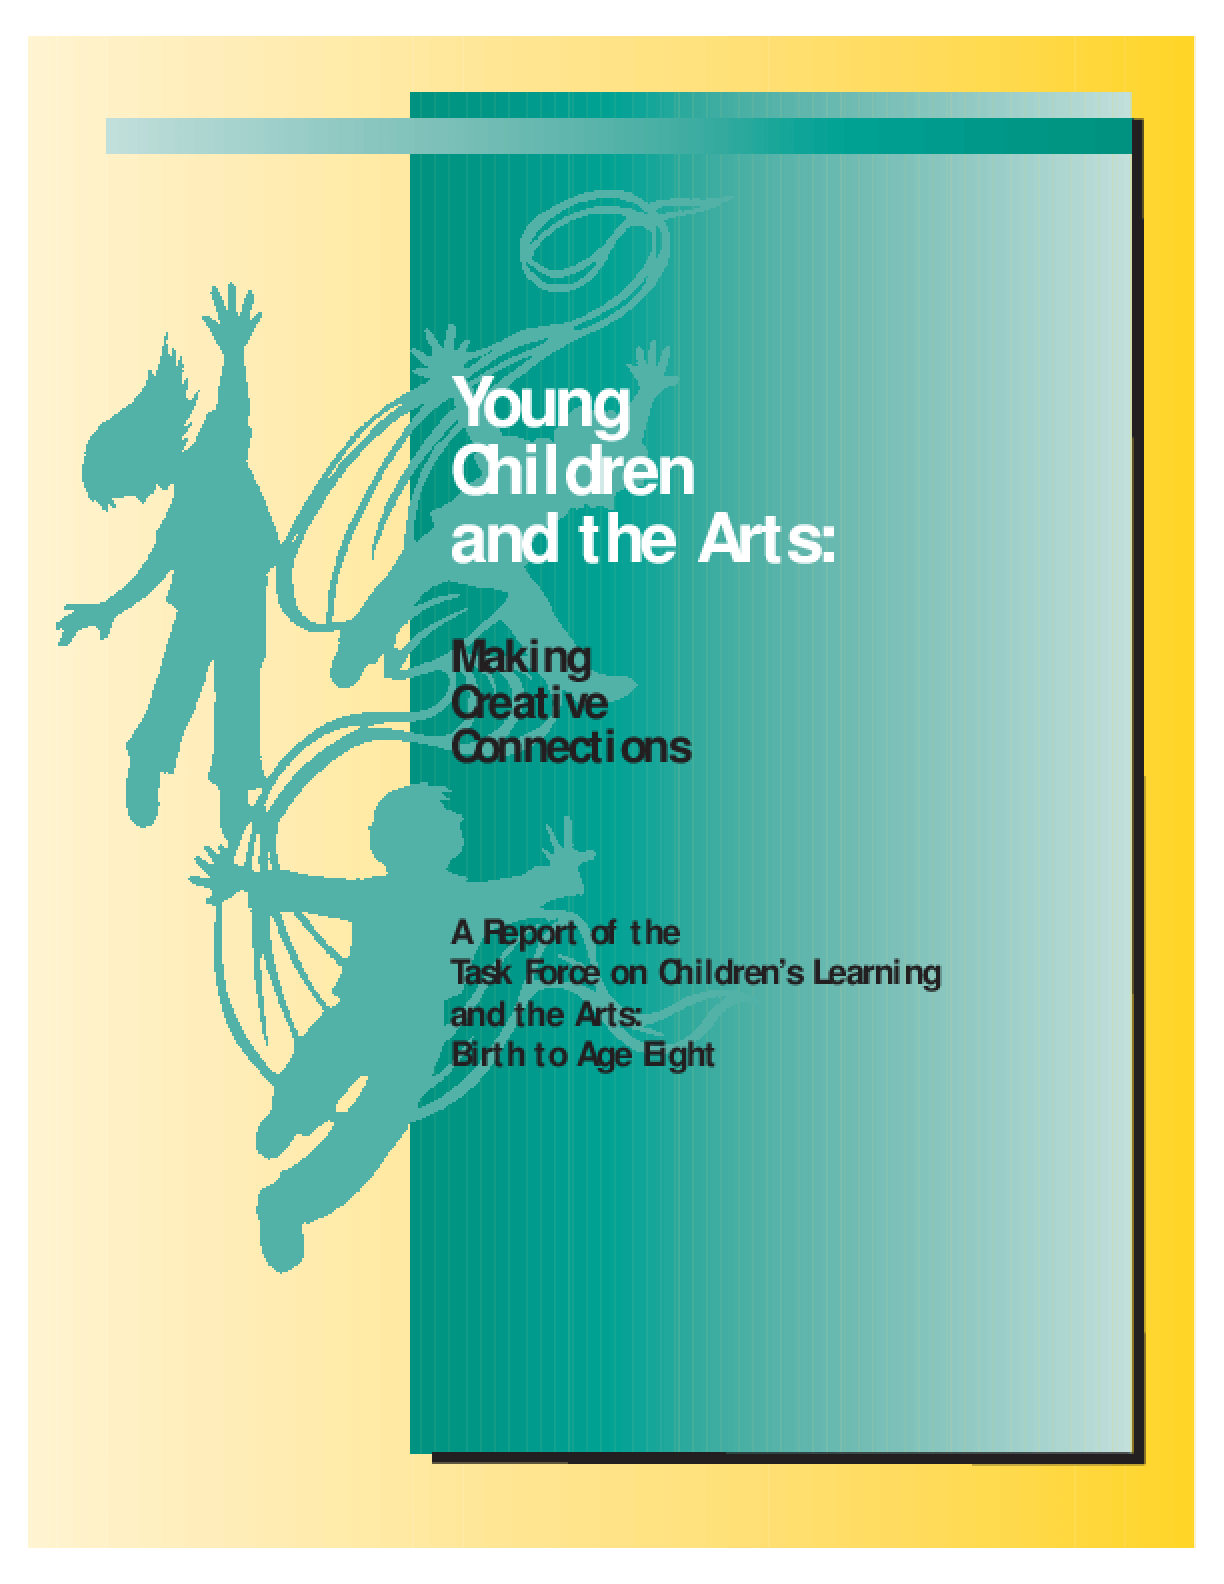 Young Children and the Arts: Making Creative Connections -- A Report of the Task Force on Children's Learning and the Arts: Birth to Age Eight